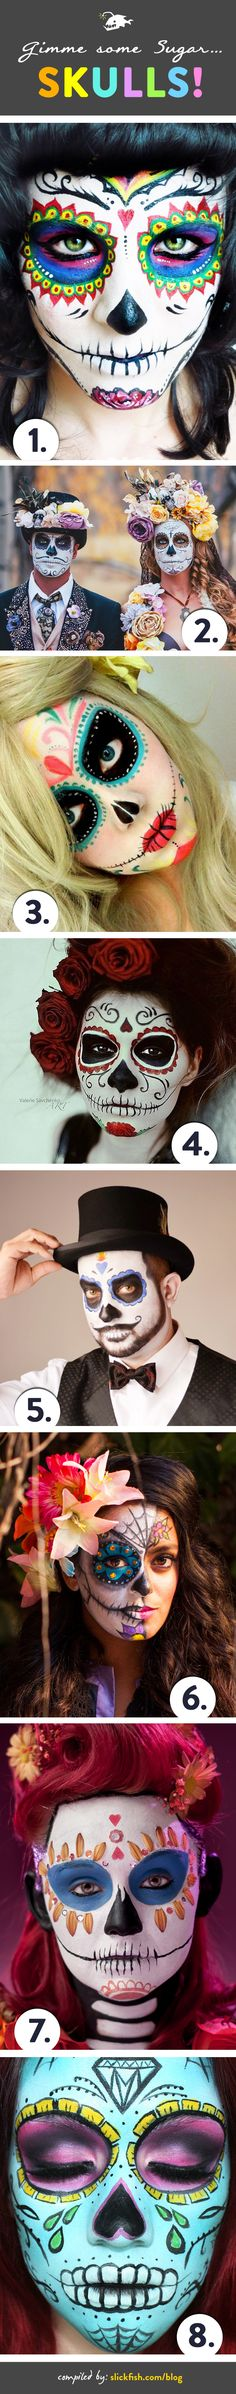 Sugar skull designs are a popular choice for adult face paint this Halloween. We love the look, so we gathered some of our favorites for your inspiration. | by slickfish.com